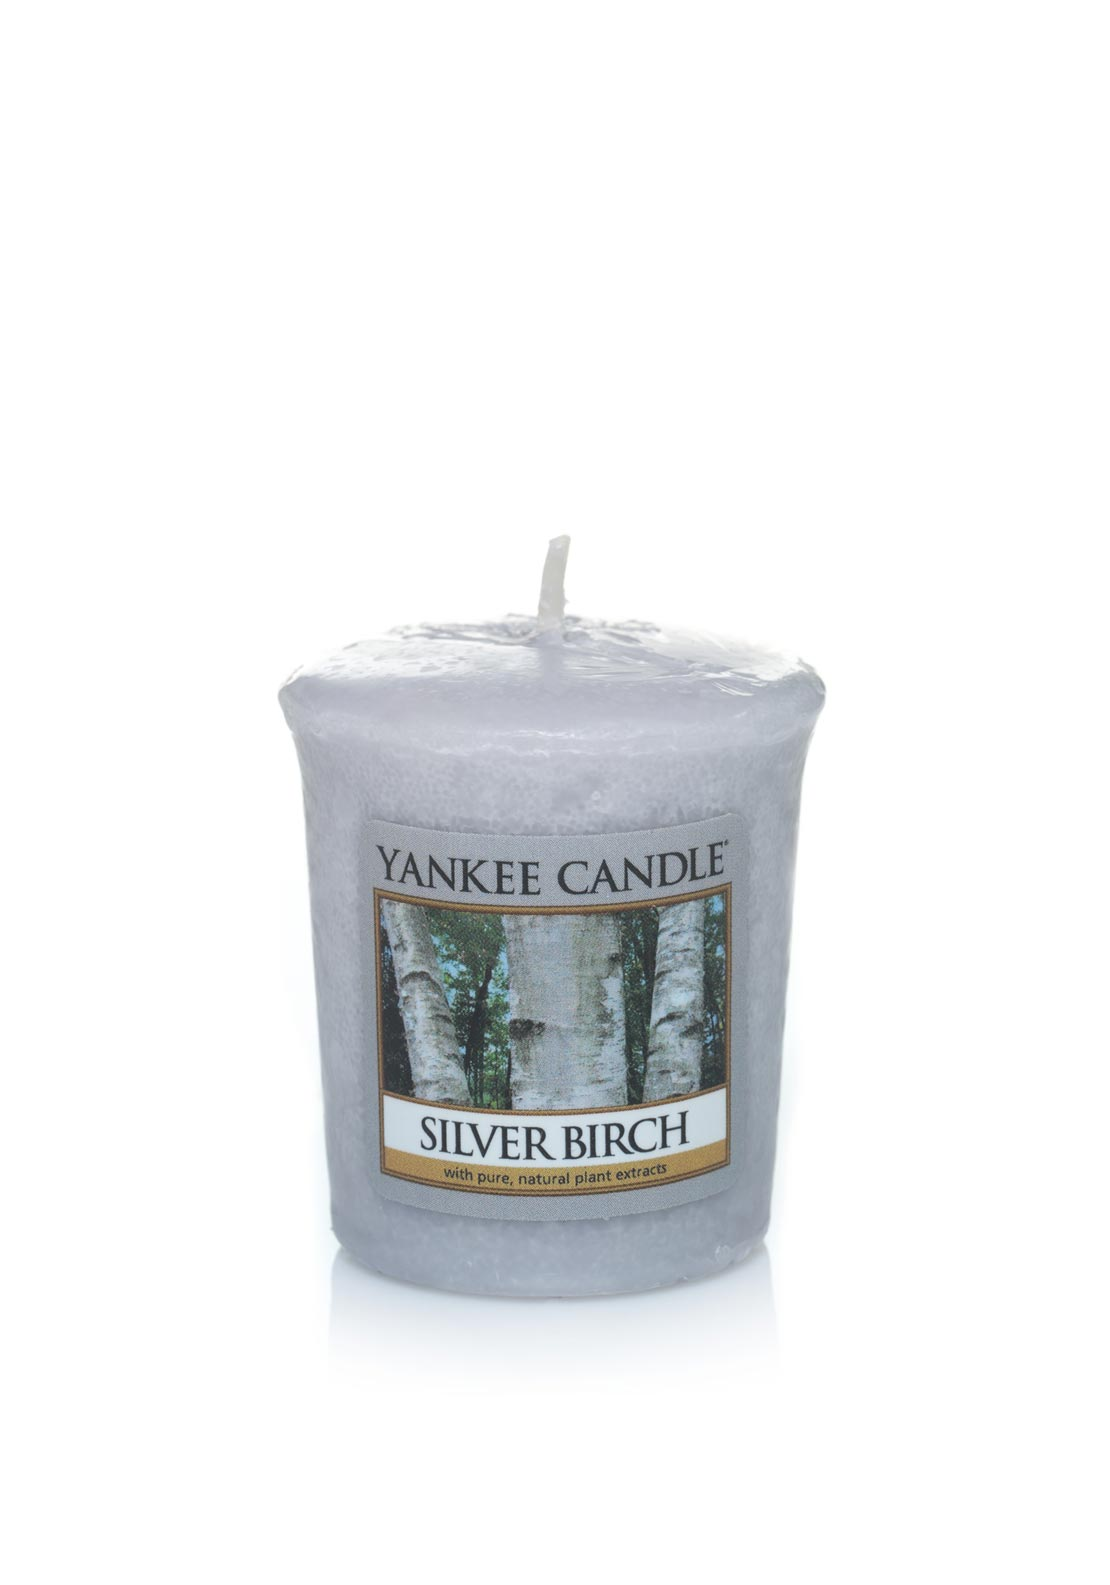 Yankee Candle Sampler Votive Candle, Silver Birch